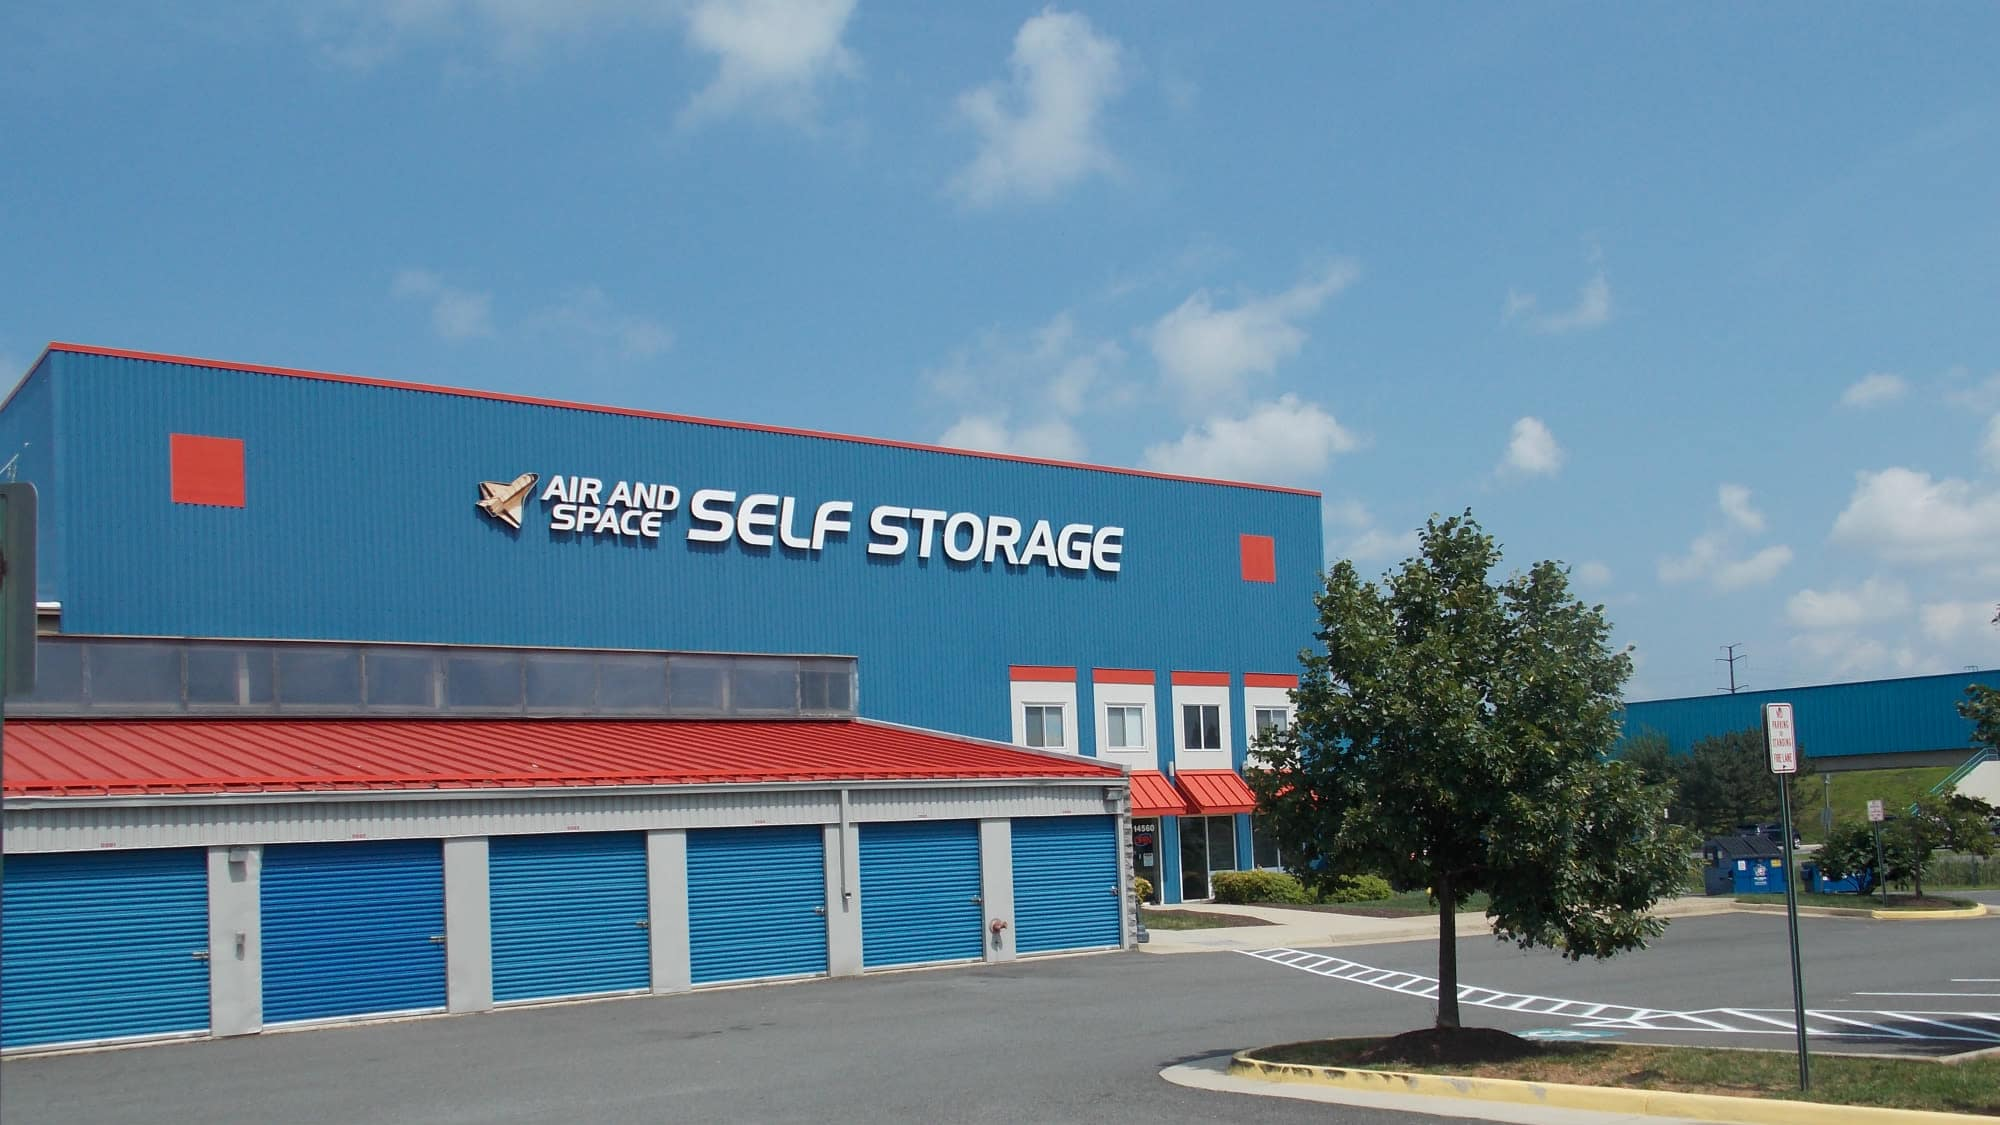 Exterior of Air and Space Self Storage in Chantilly, VA